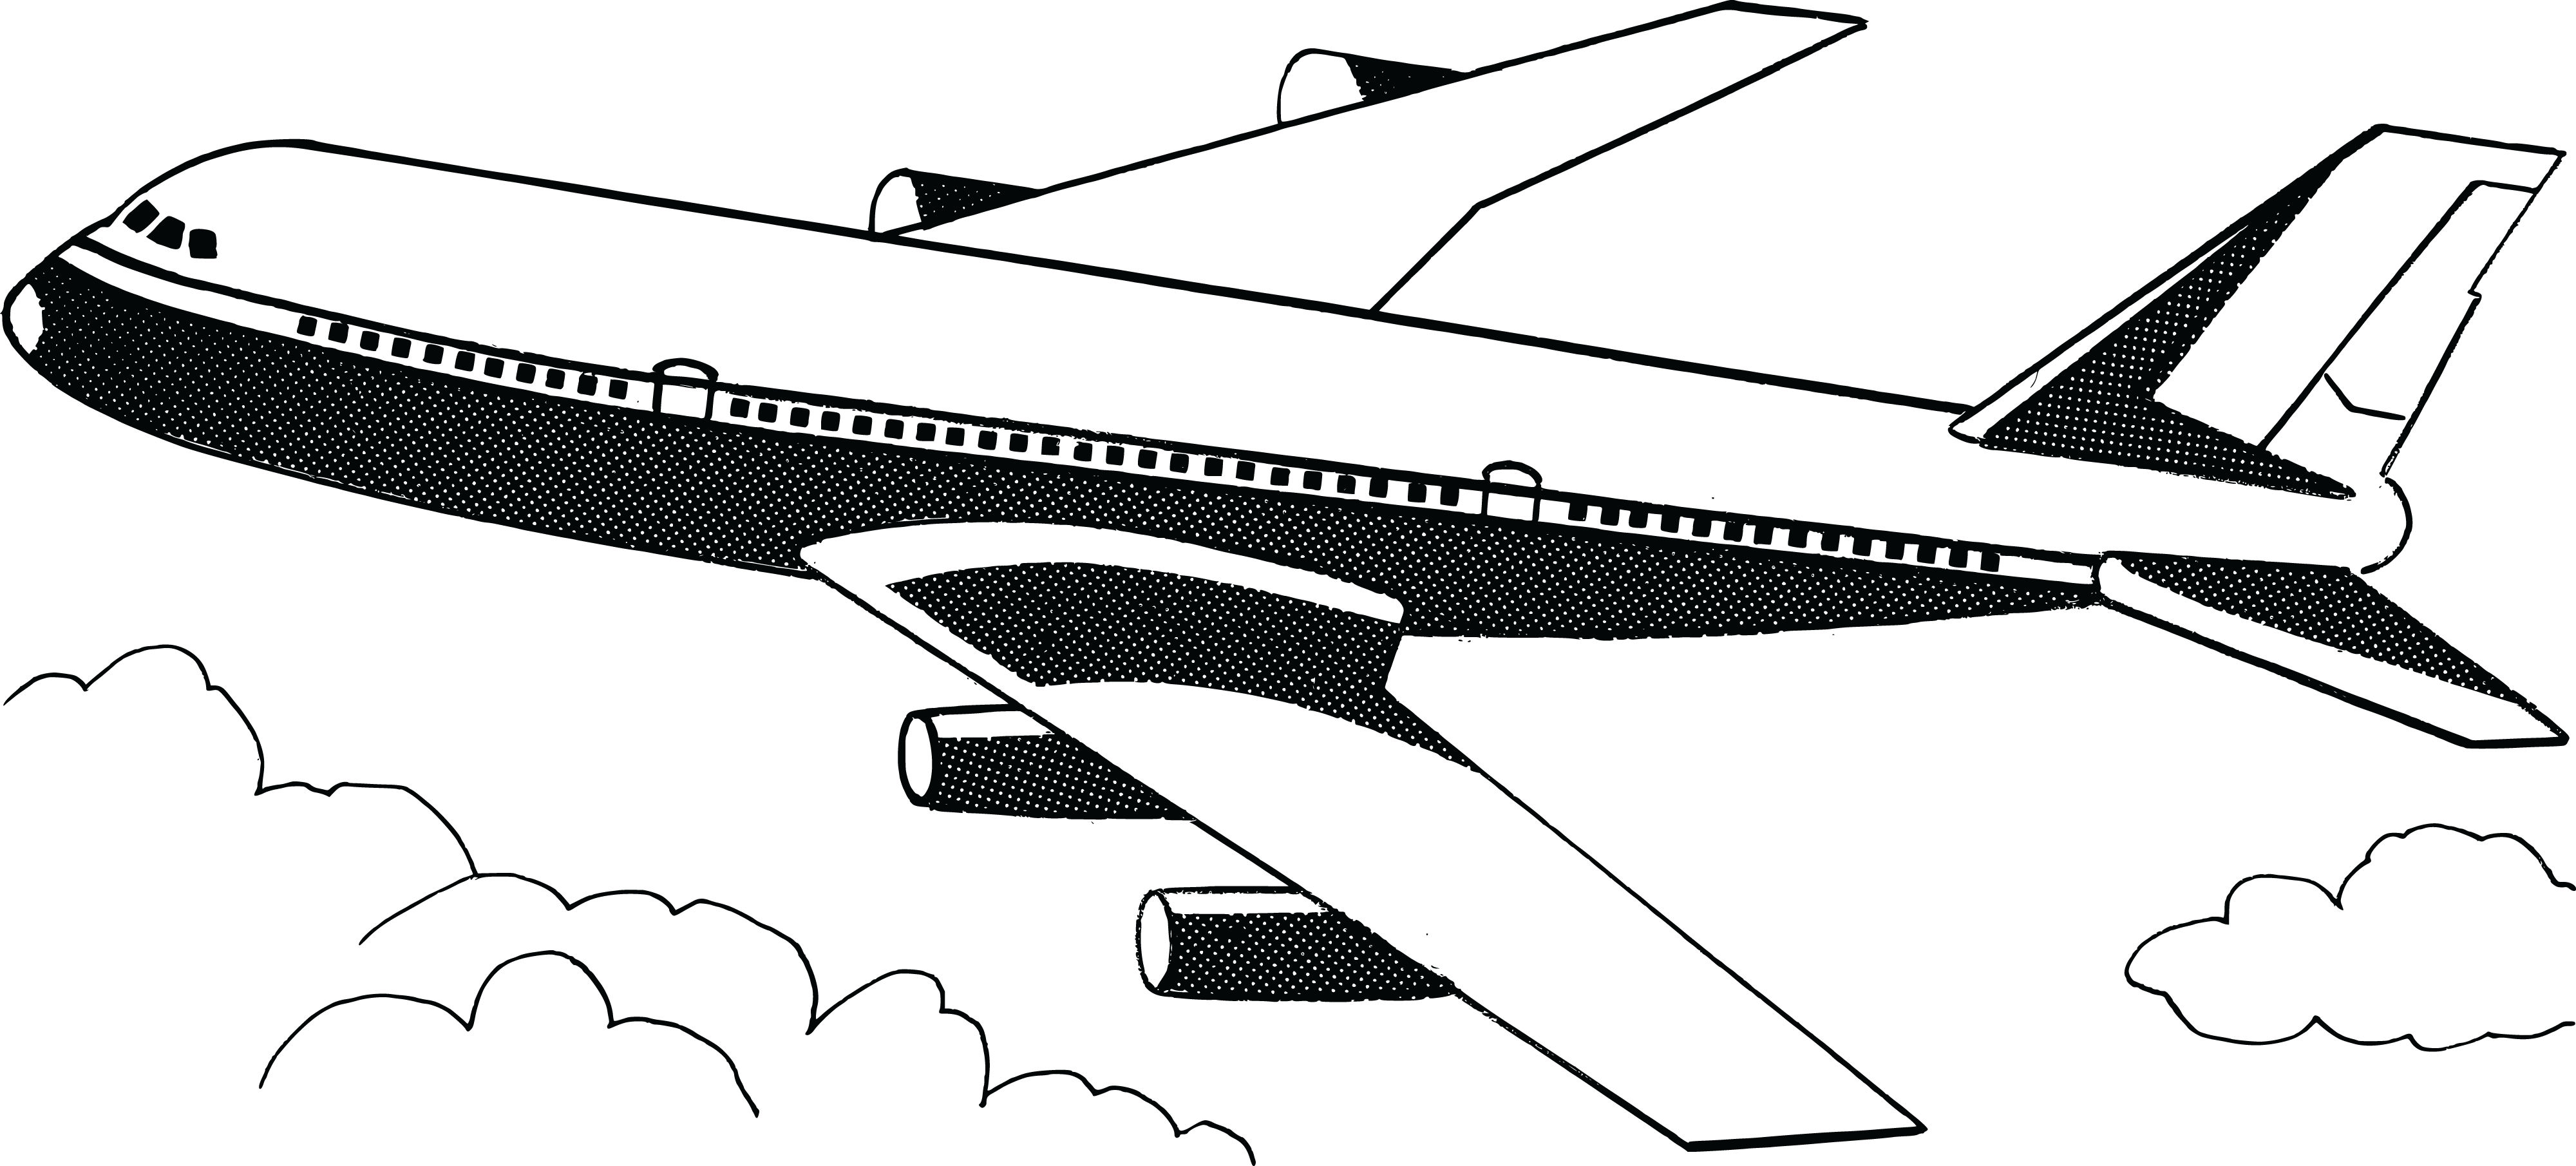 Airplanes Png Free Clipart Of A Plane Black And White Clip Art